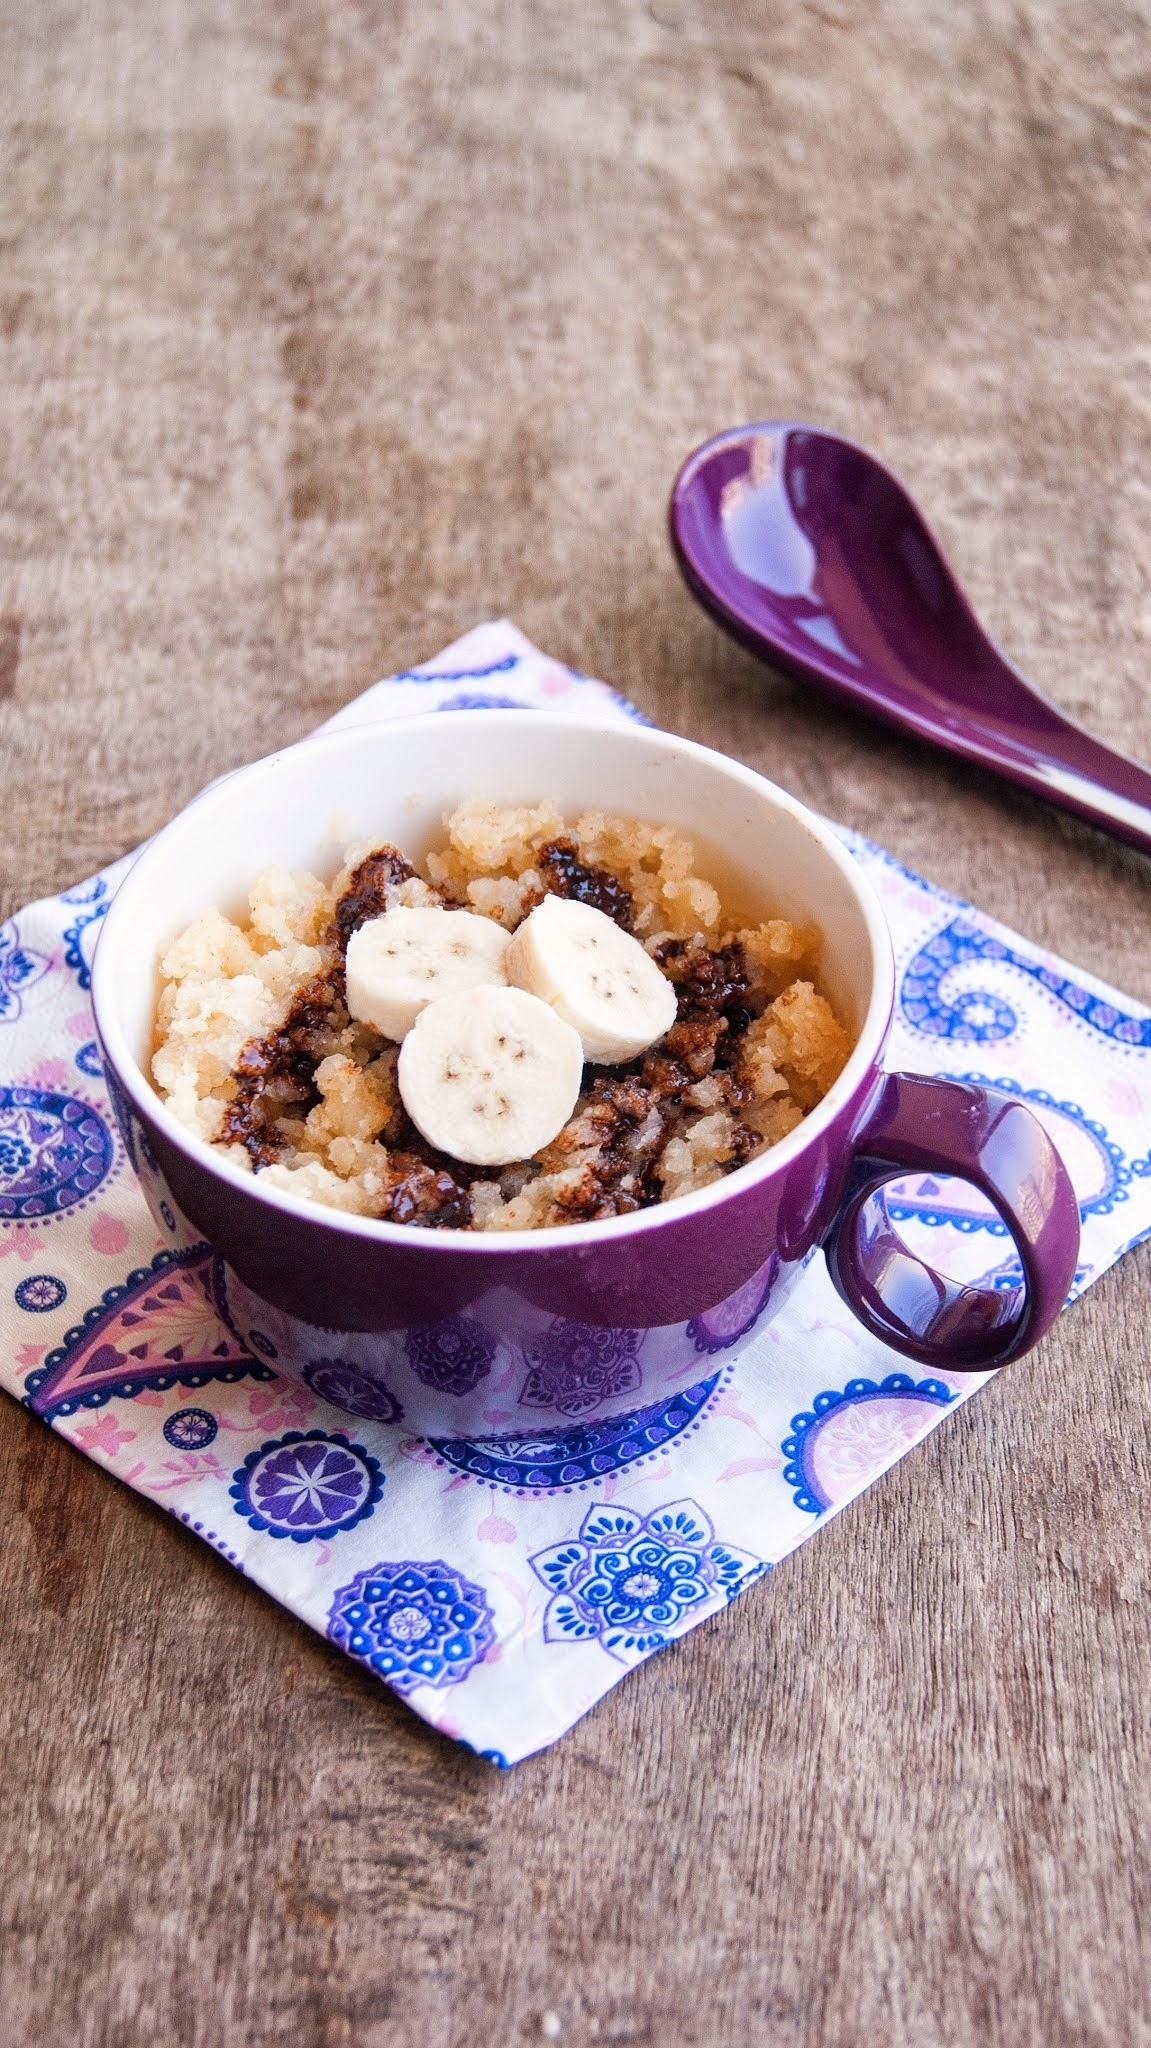 Eggless Banana Mug cake with chocolate syrup